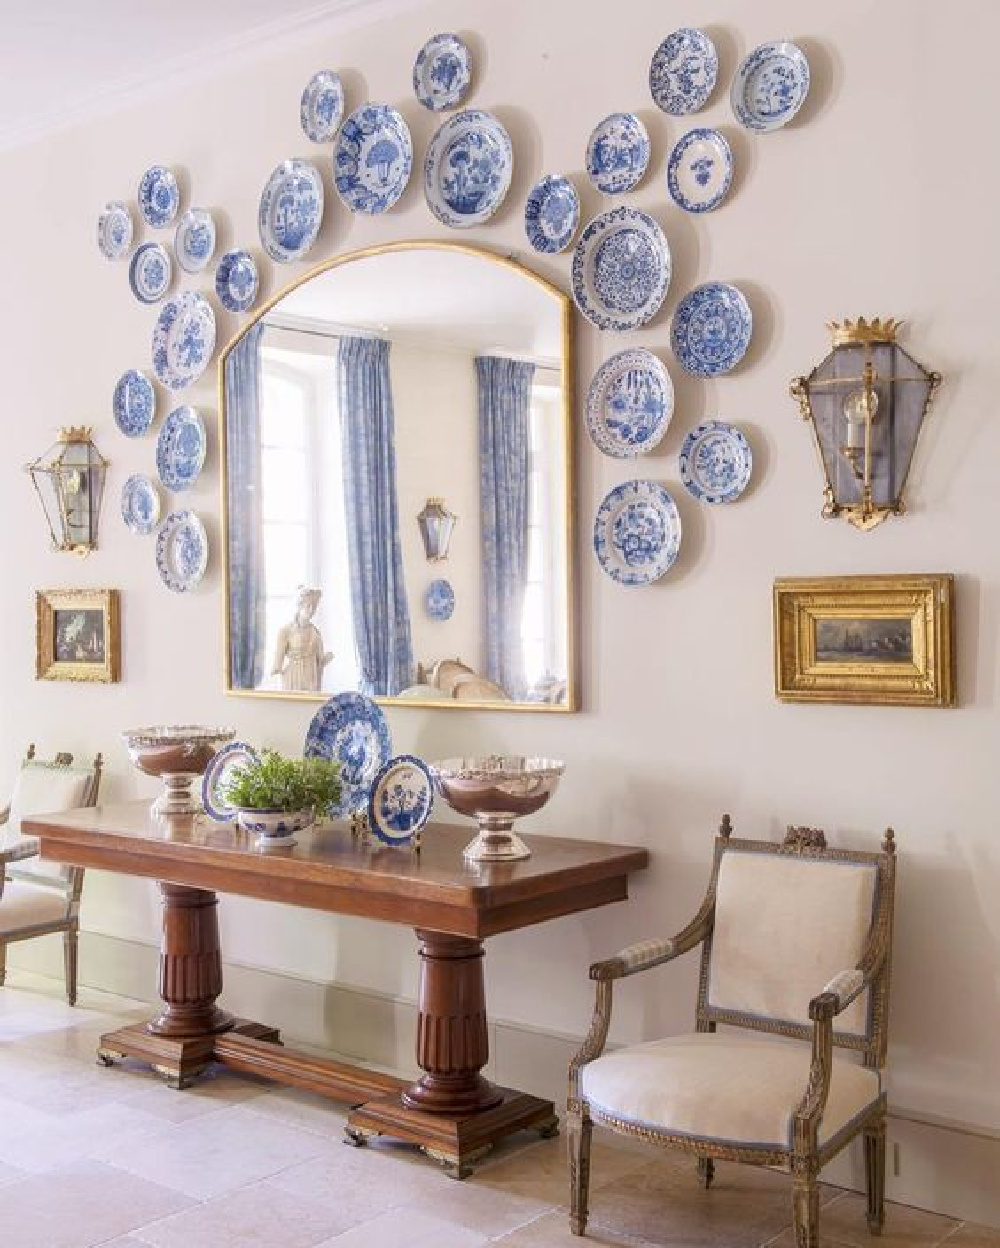 Traditional French country dining roomy in an exquisite Provence farmhouse (Le Mas des Poiriers).